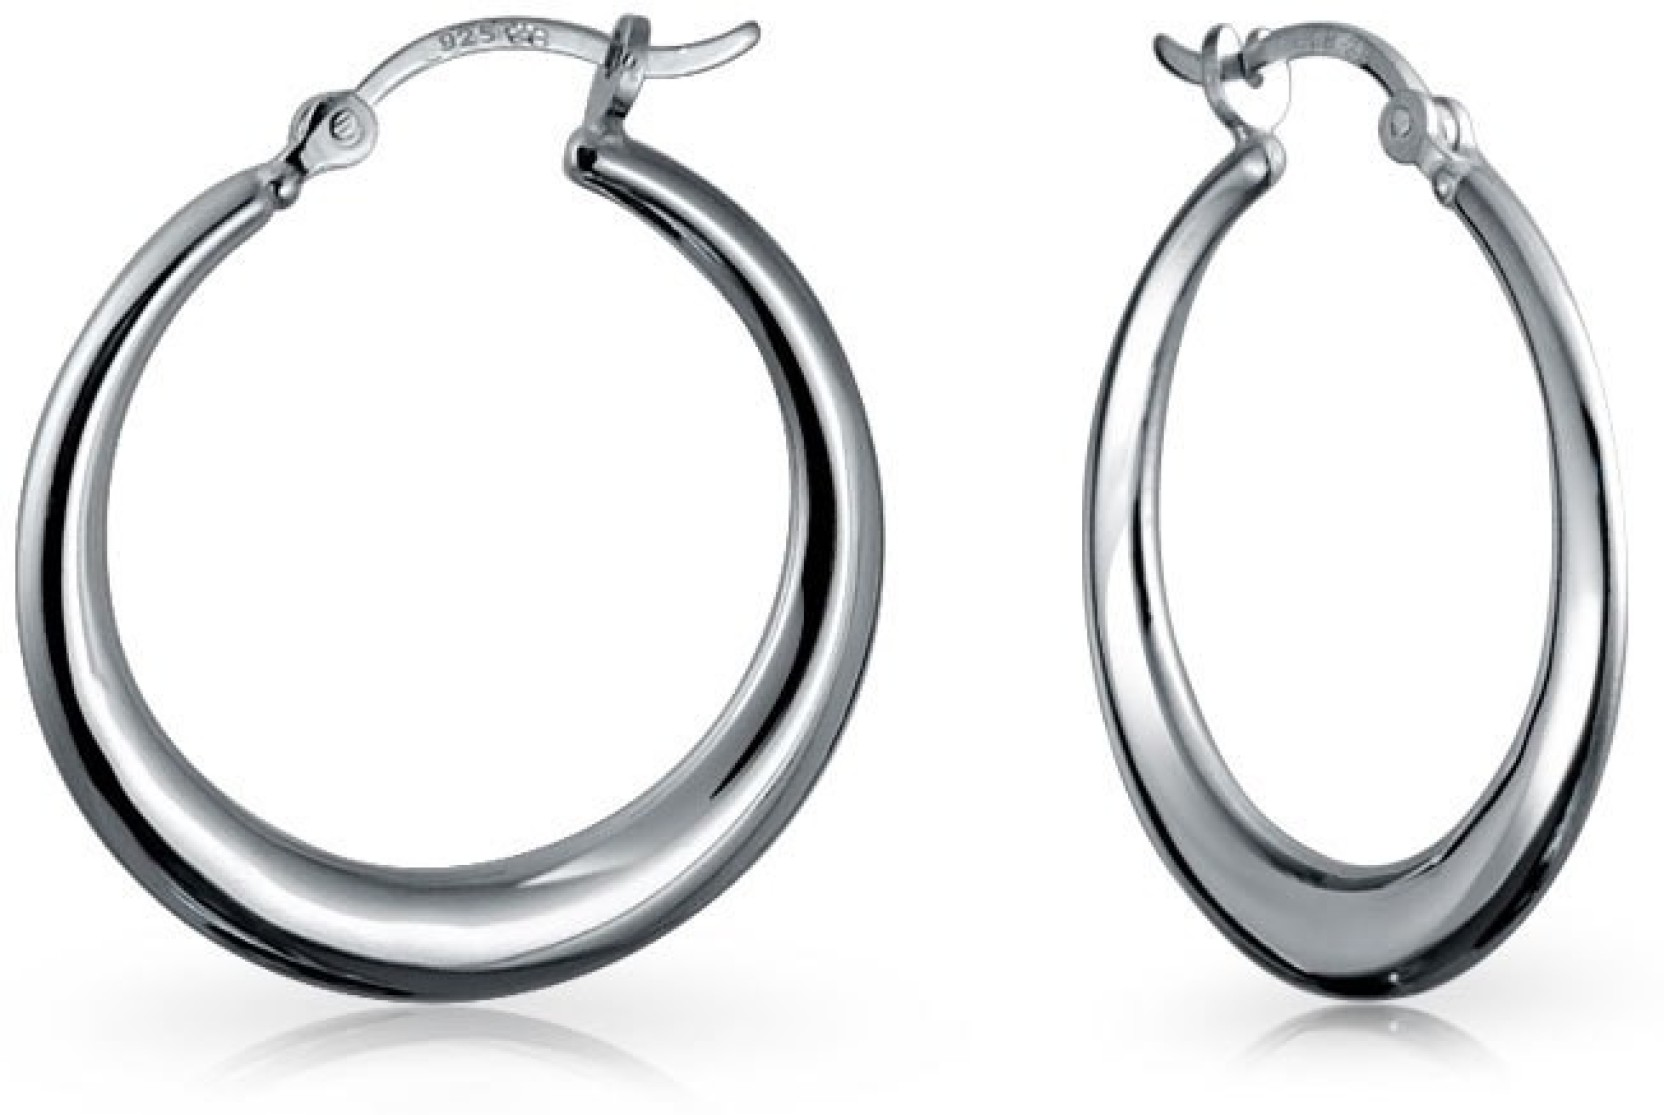 dc5f7b2e0 Flipkart.com - Buy Bling Jewelry Small Round Circle .925 Silver Hoop ...